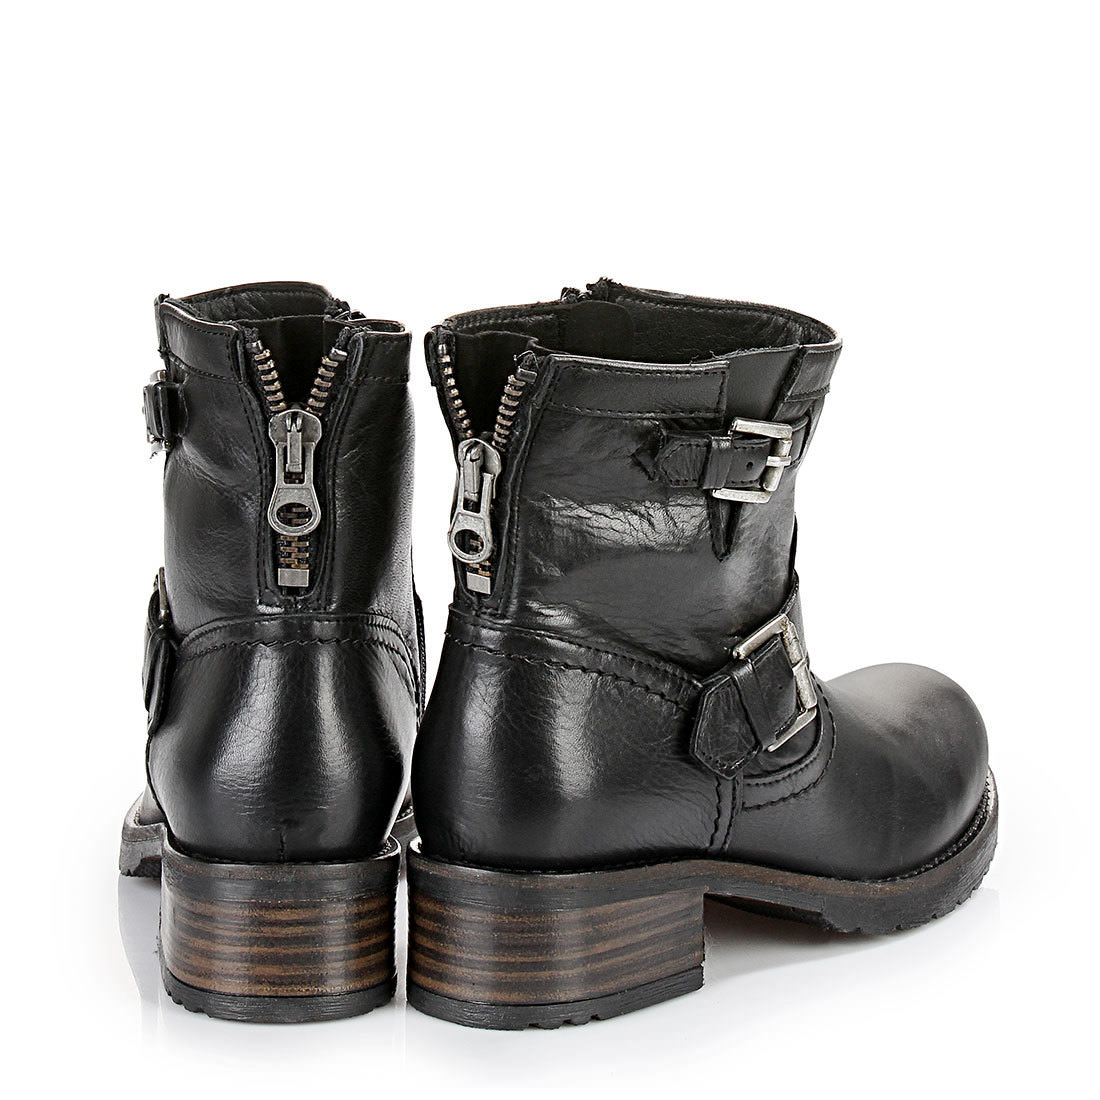 buffalo biker boots in black buy online in buffalo online shop buffalo. Black Bedroom Furniture Sets. Home Design Ideas